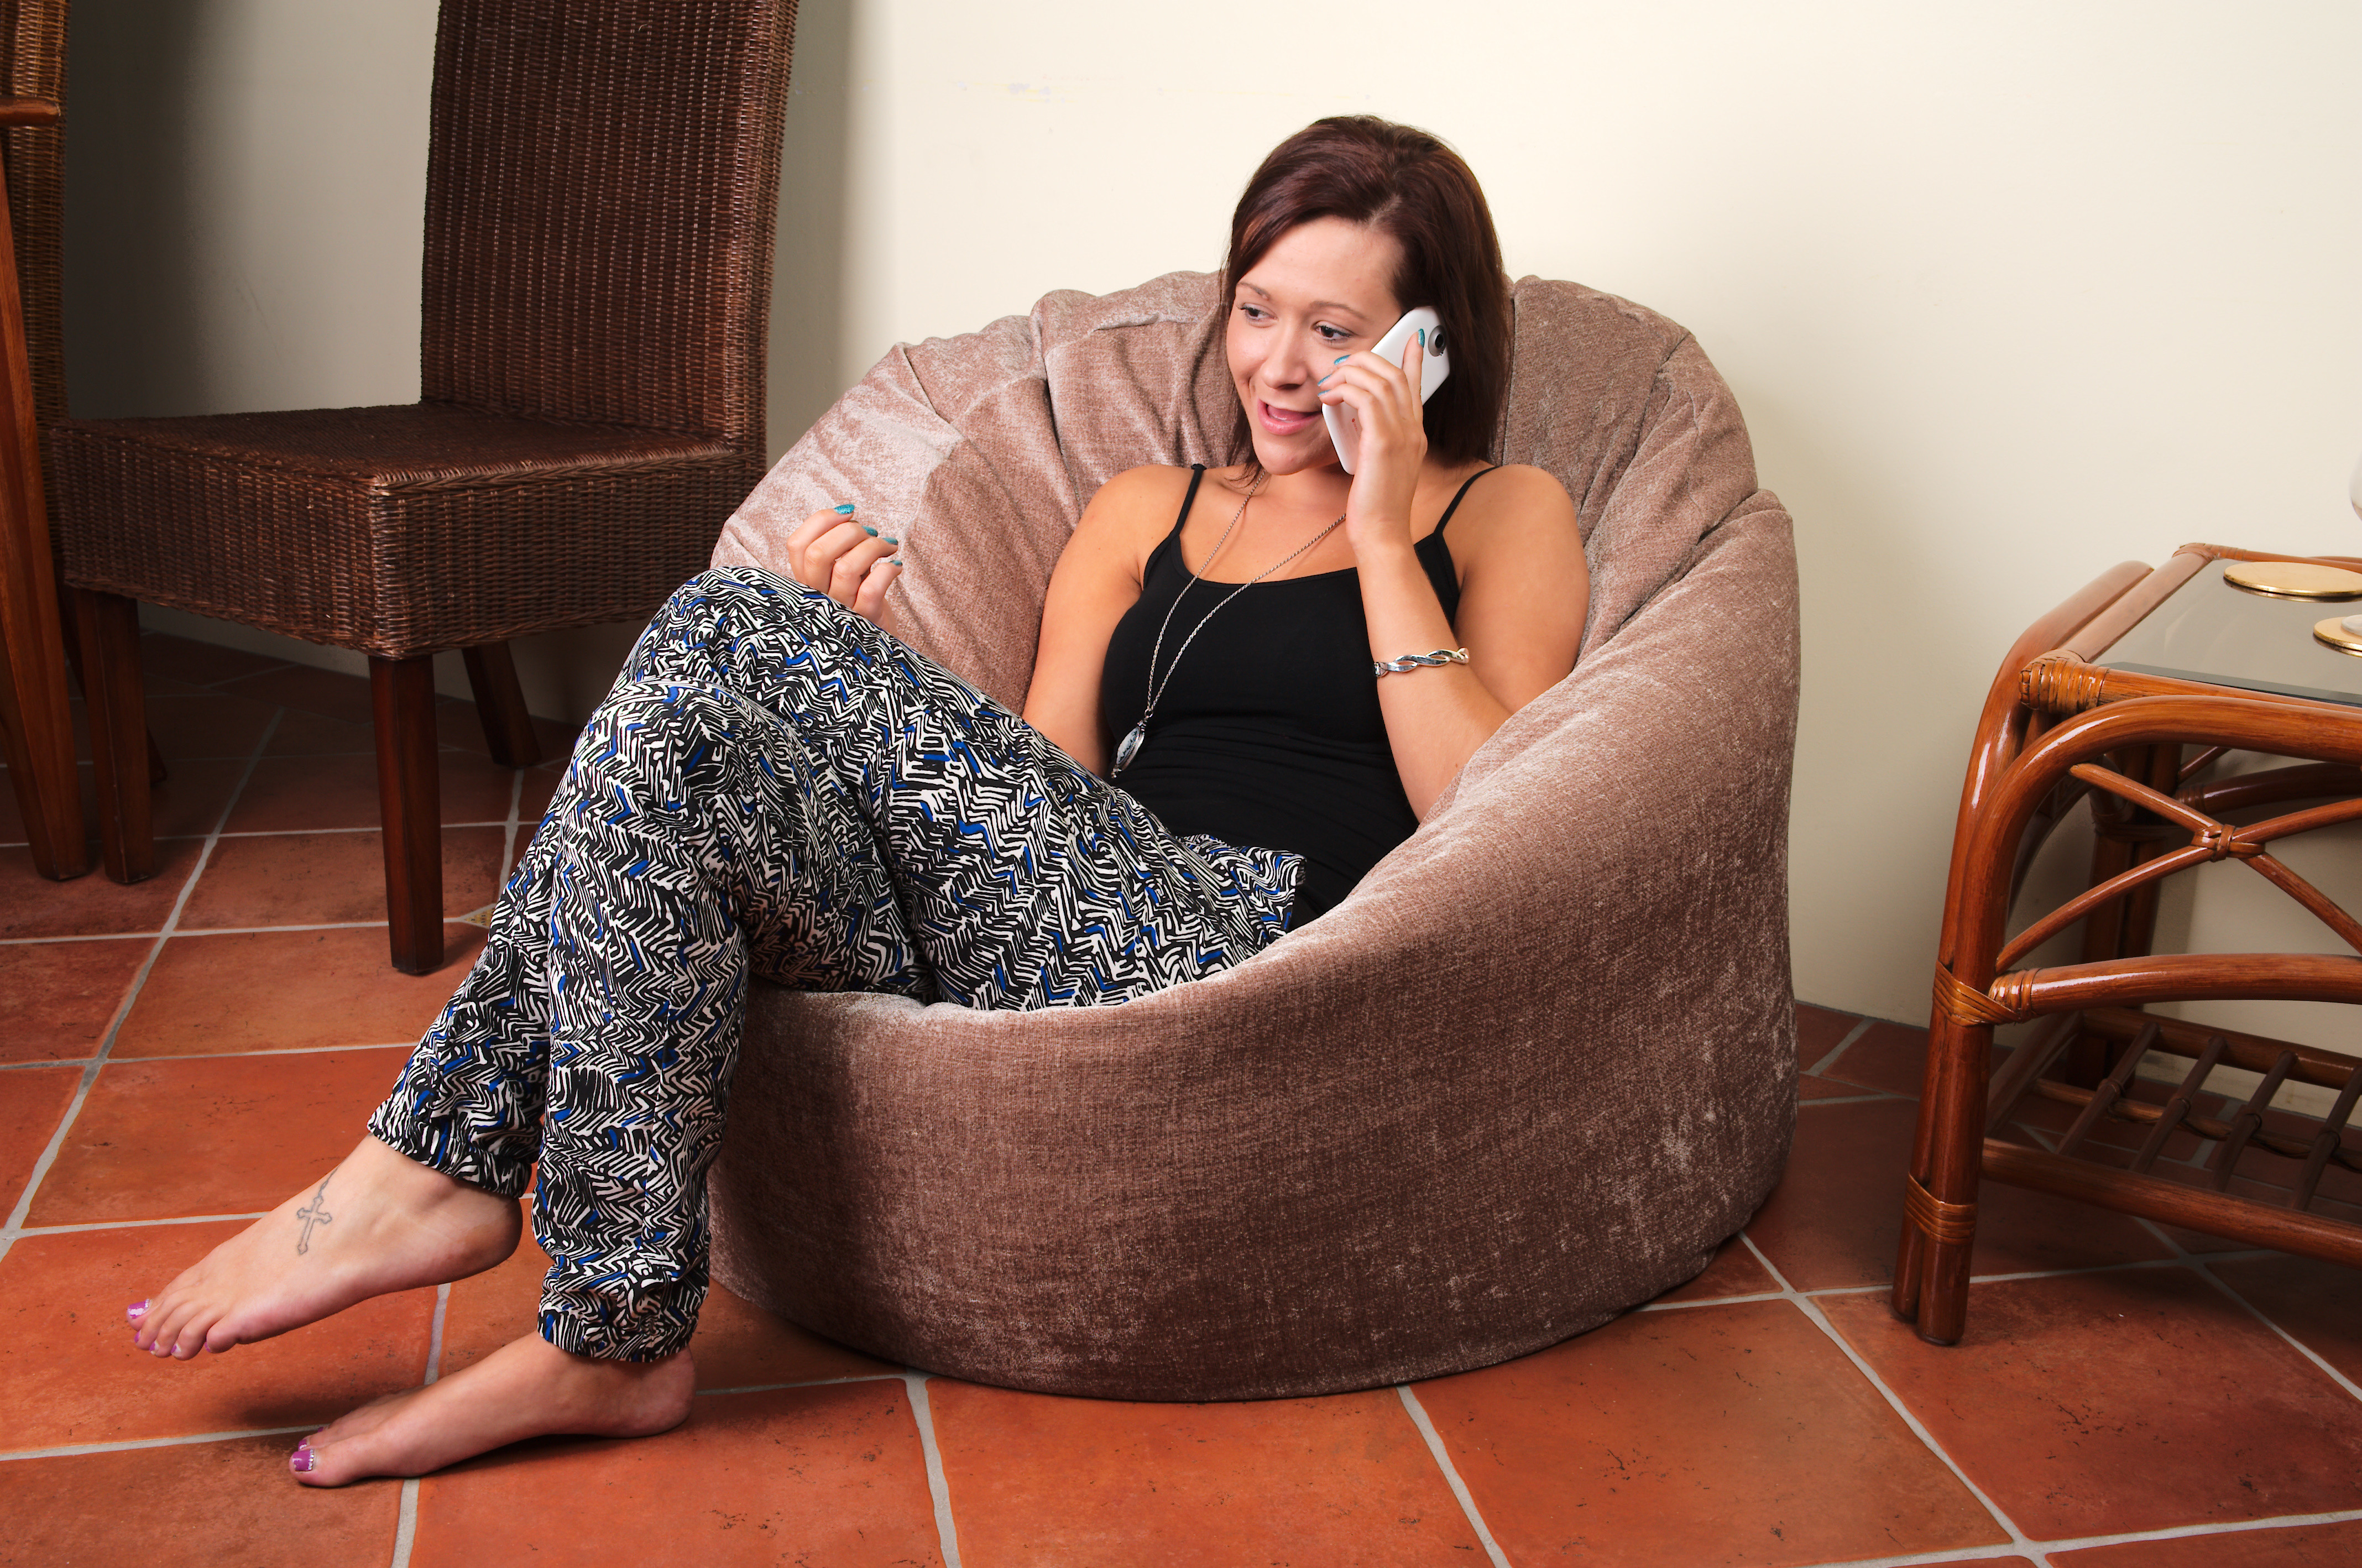 Girl sitting on beanbag using phone